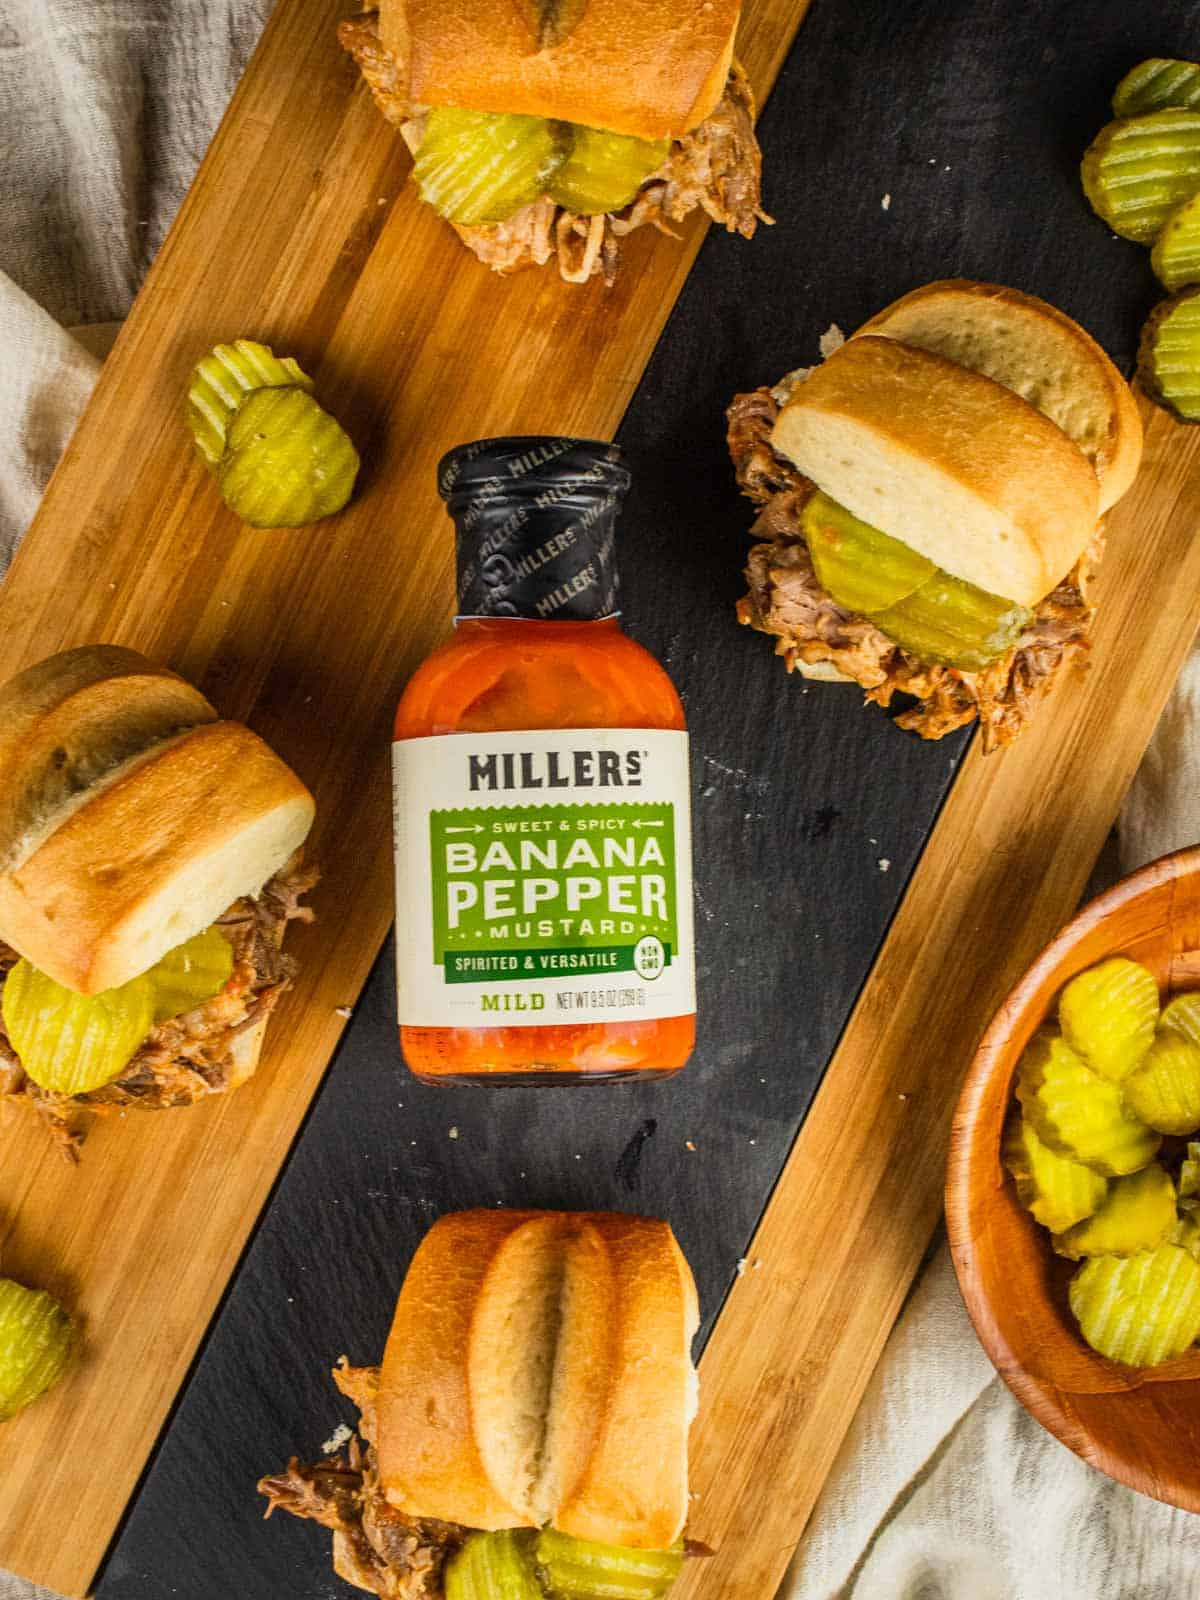 pulled pork on slider buns with pickles around a bottle of millers mustard on a cutting board